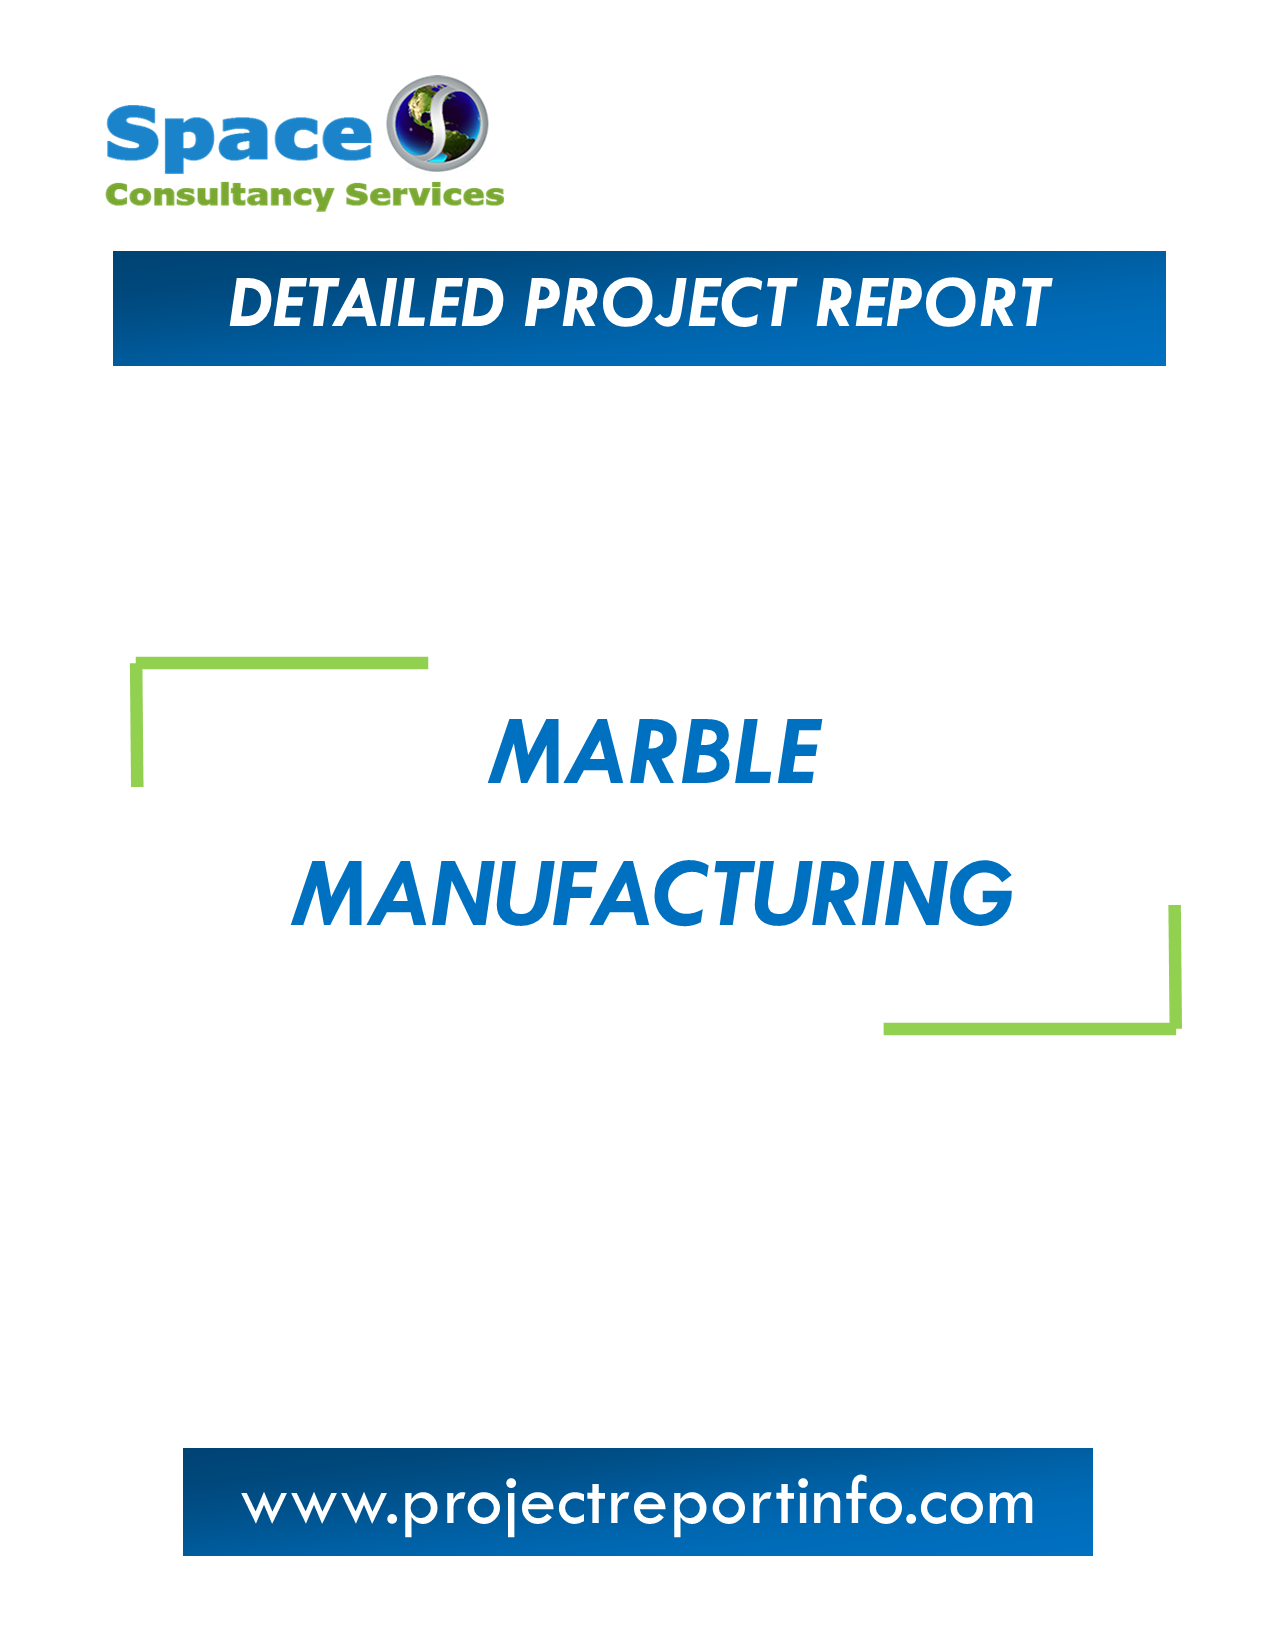 Project Report on Marble Manufacturing